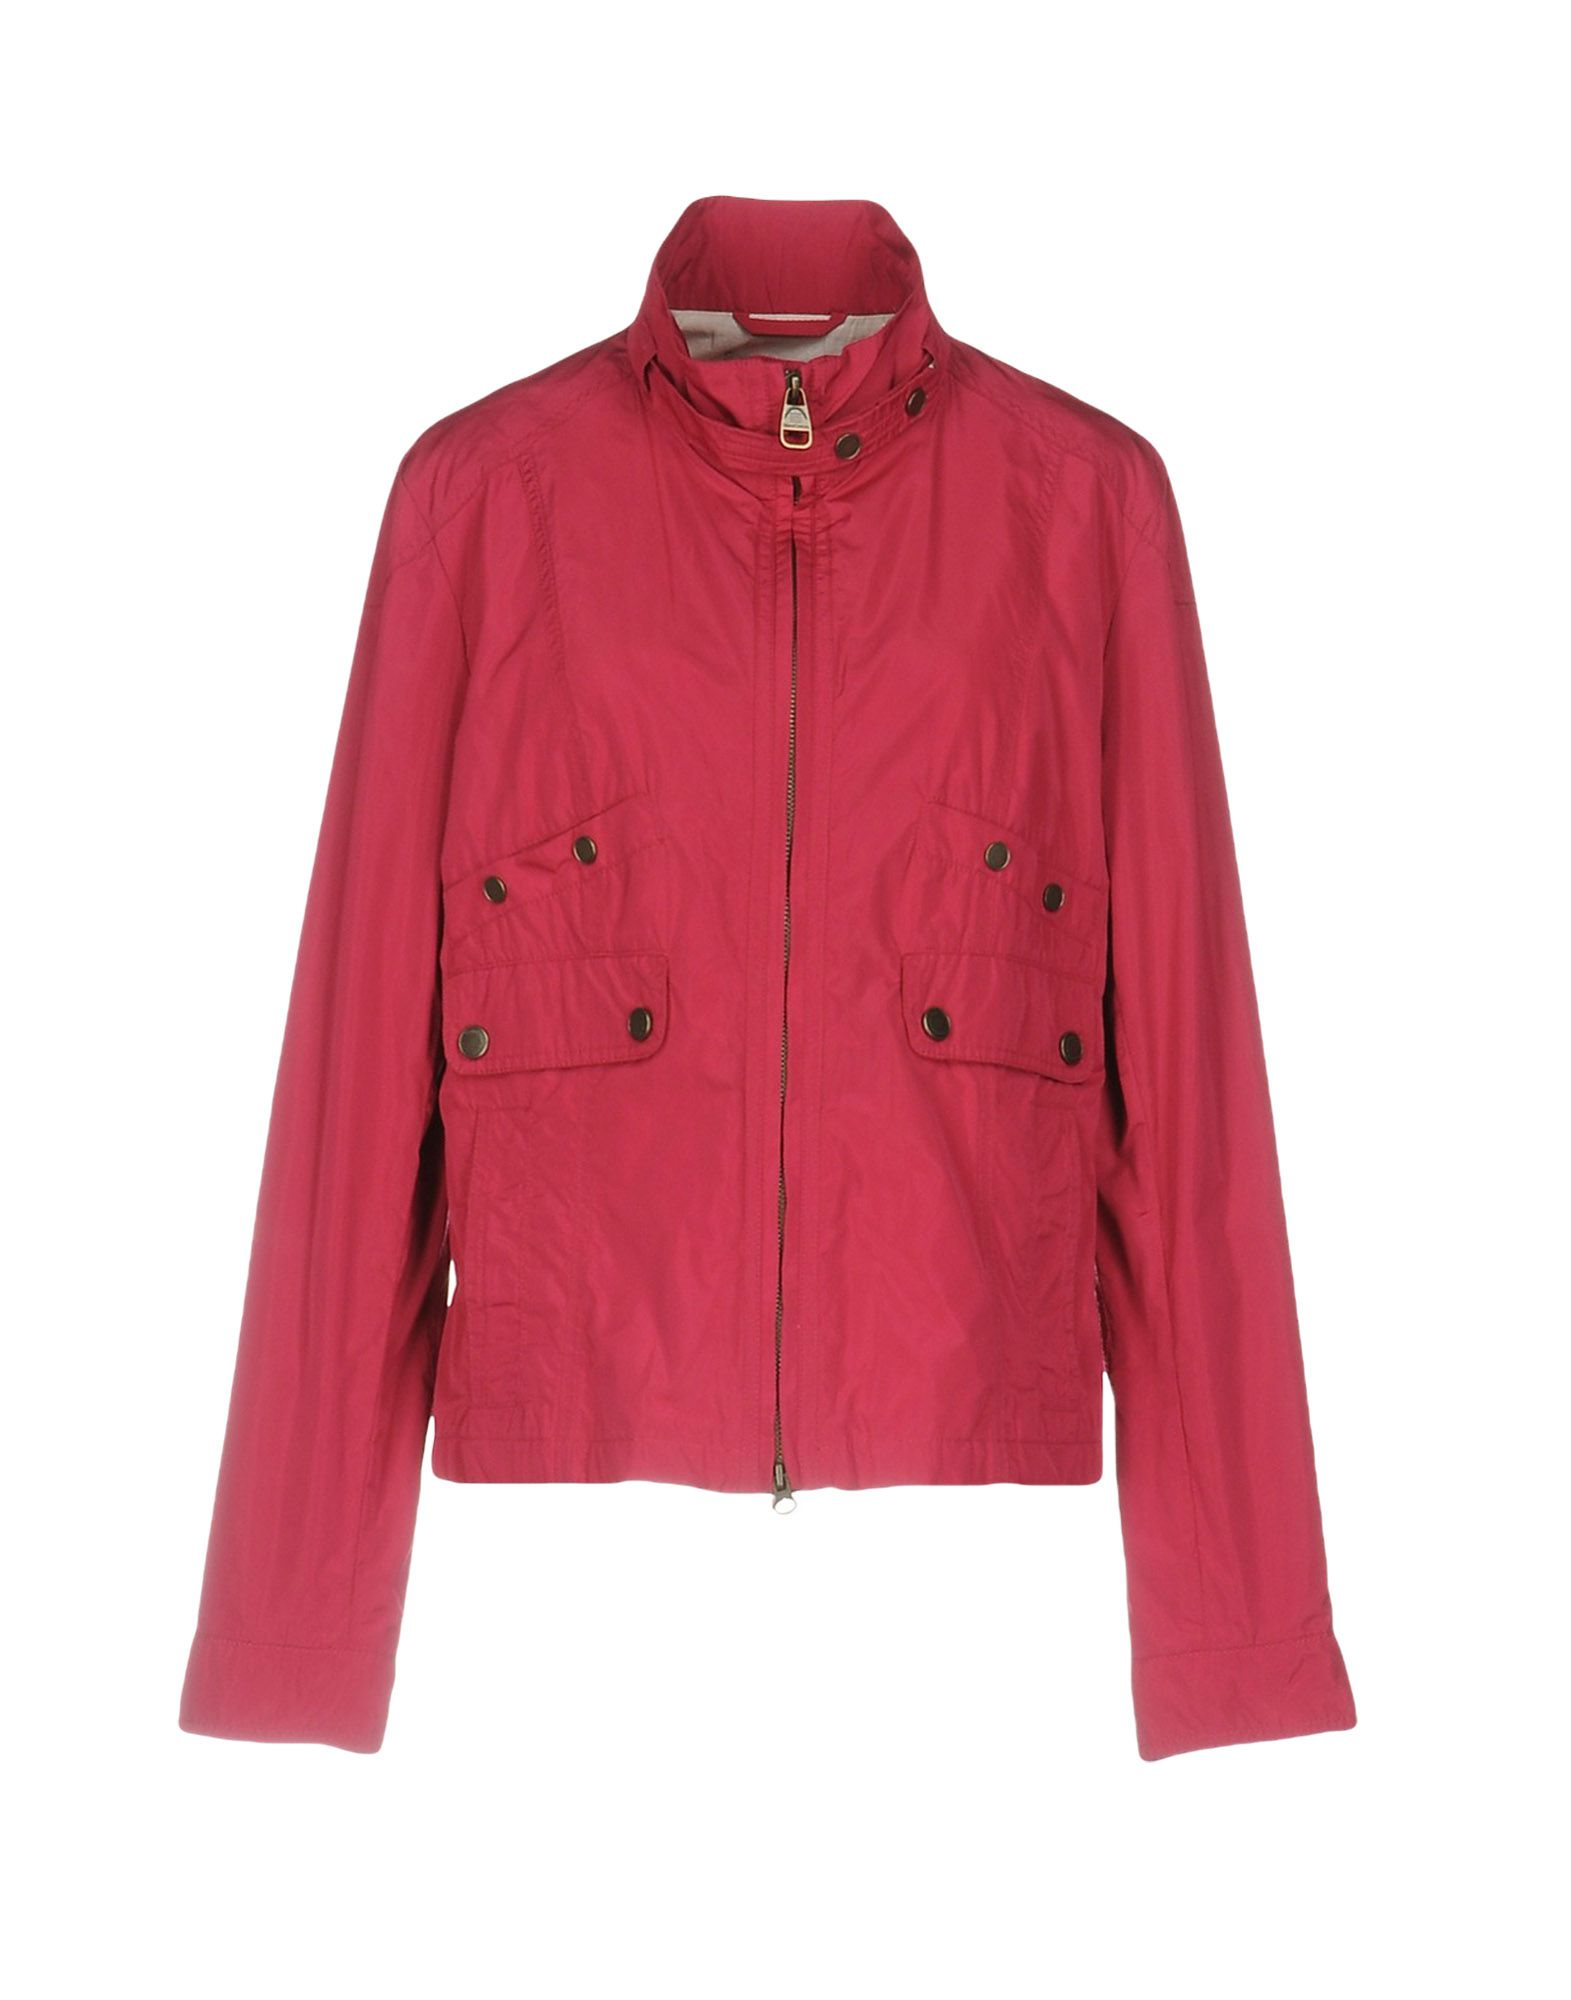 henry cottons female henry cottons jackets